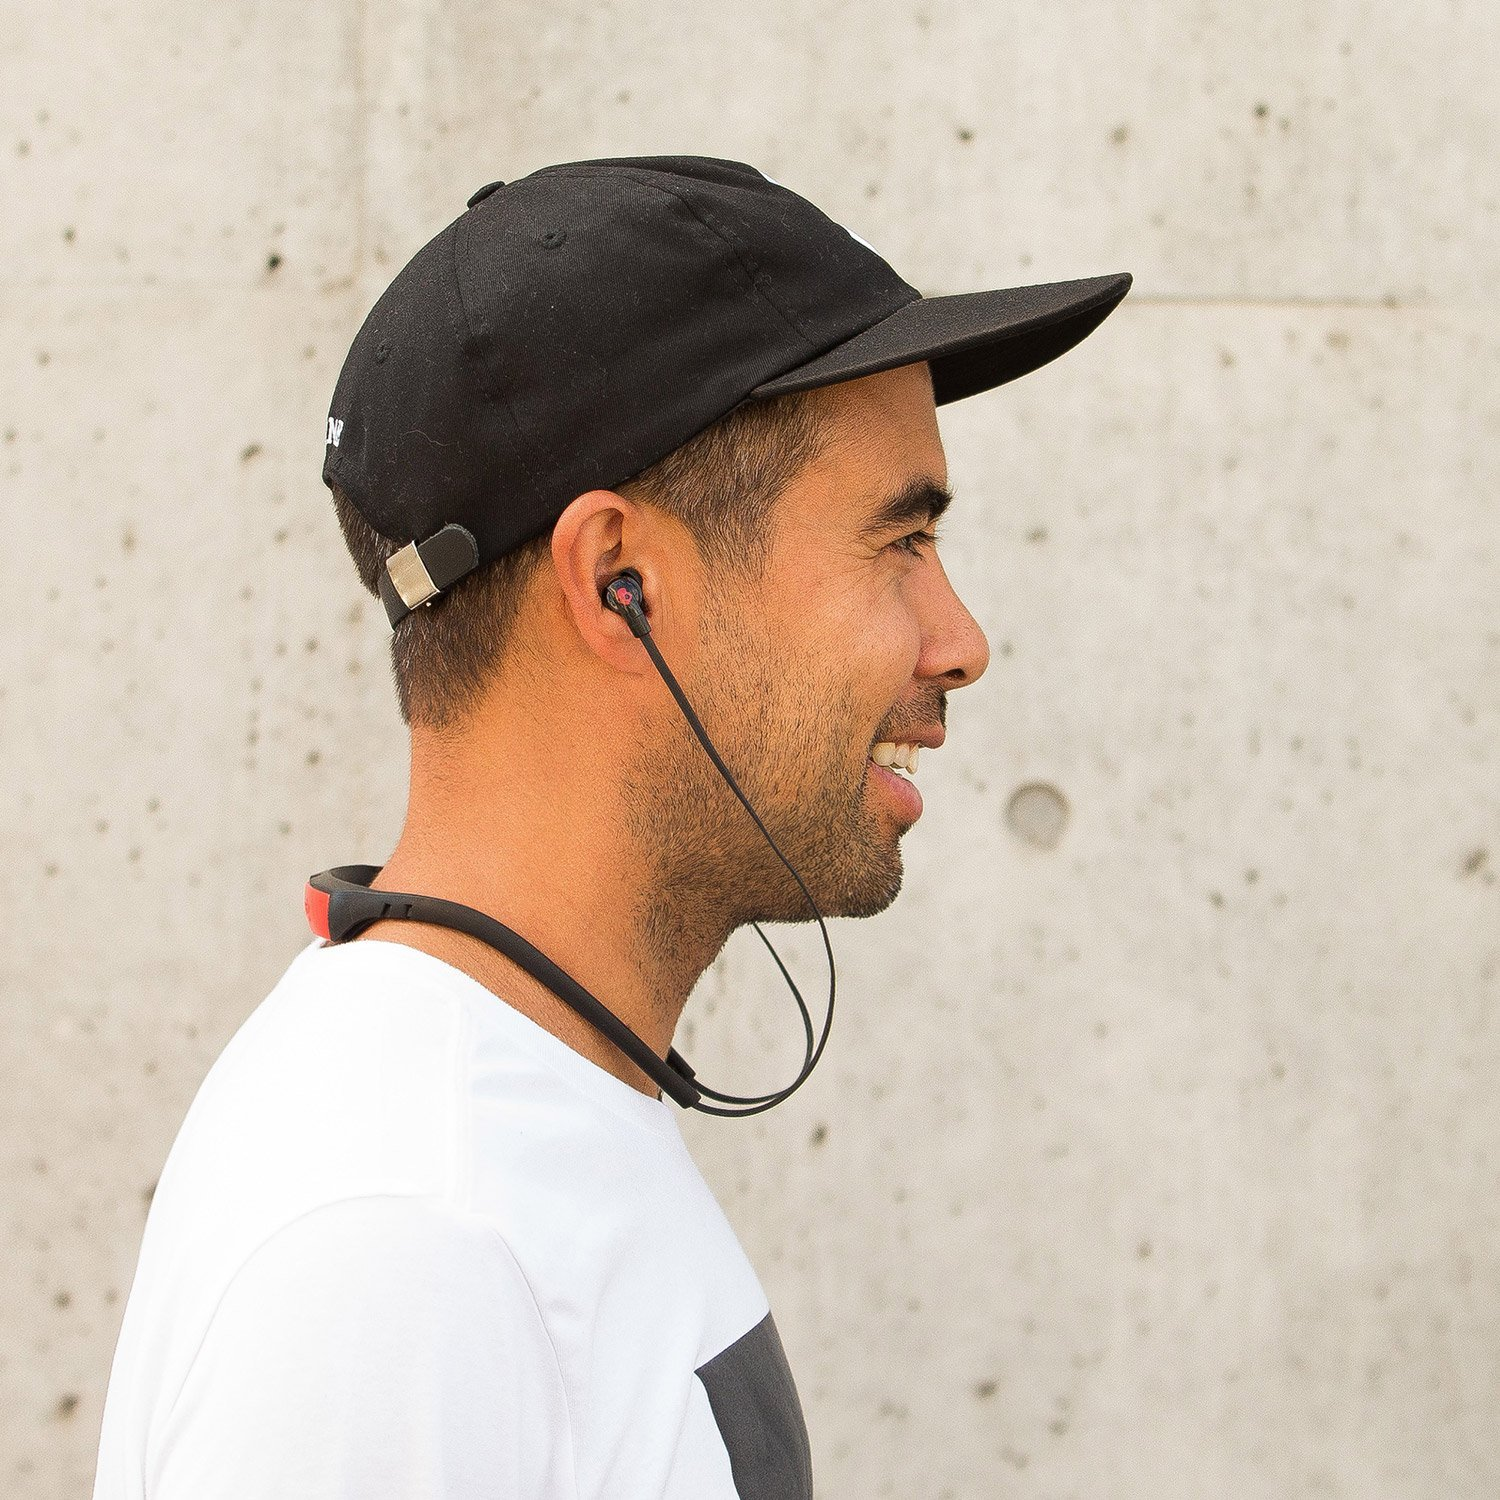 Skullcandy-Smokin-039-Buds-2-in-Ear-Bluetooth-Wireless-Earbuds-with-Microphone-New thumbnail 23